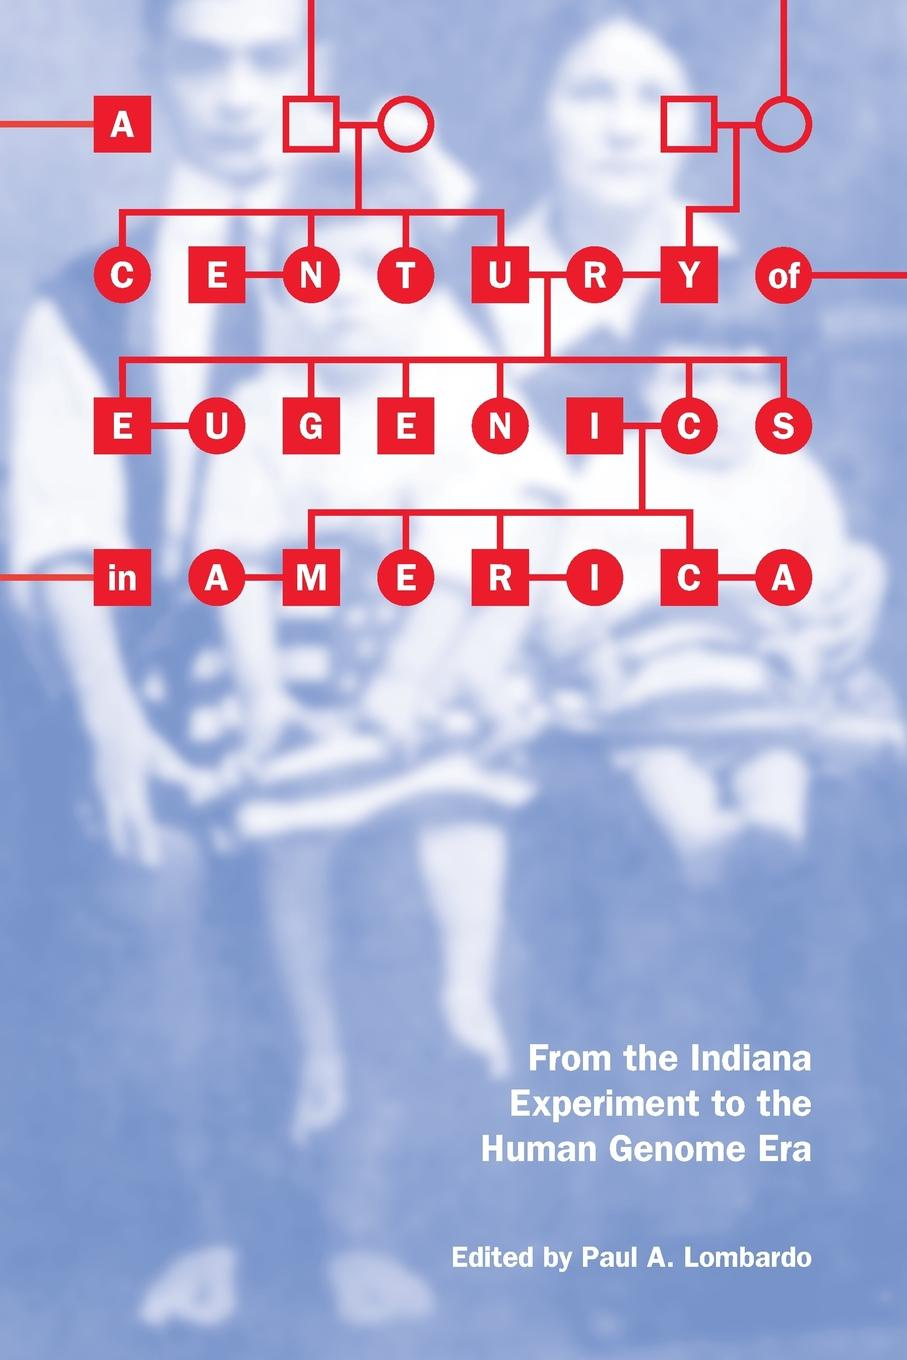 A Century of Eugenics in America. From the Indiana Experiment to the Human Genome Era david murphy molecular neuroendocrinology from genome to physiology